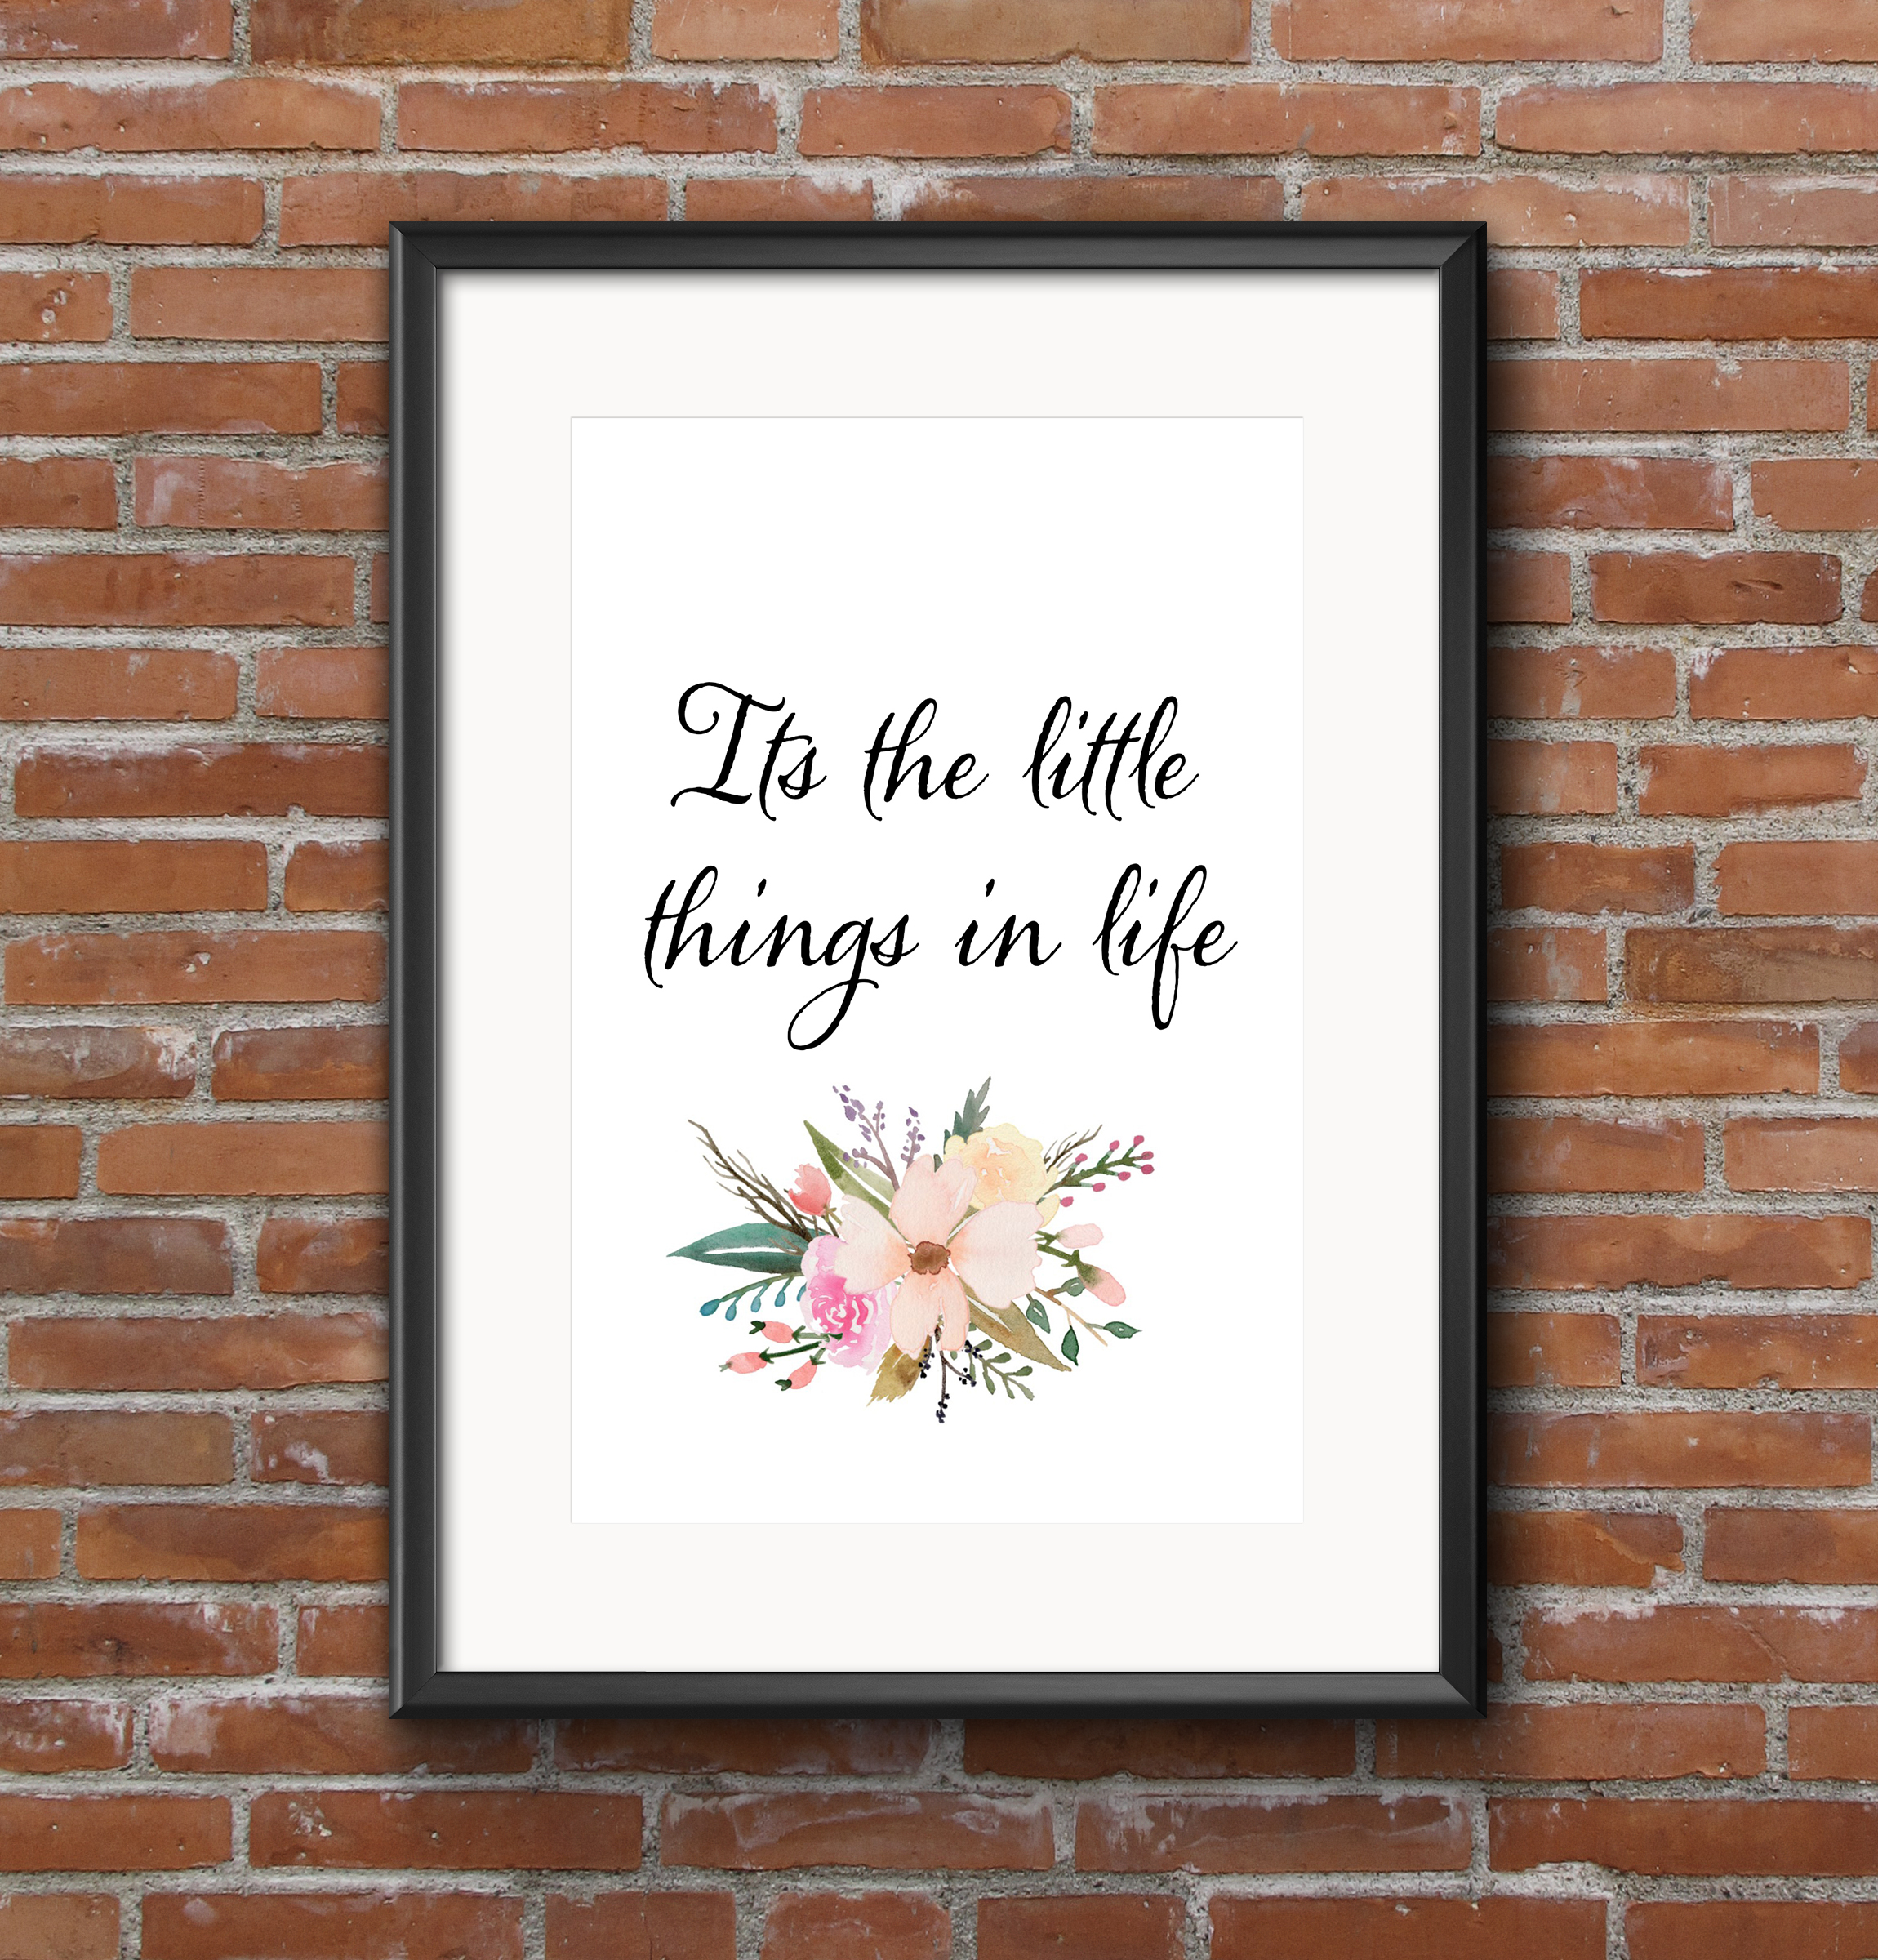 Its the little things in life framed